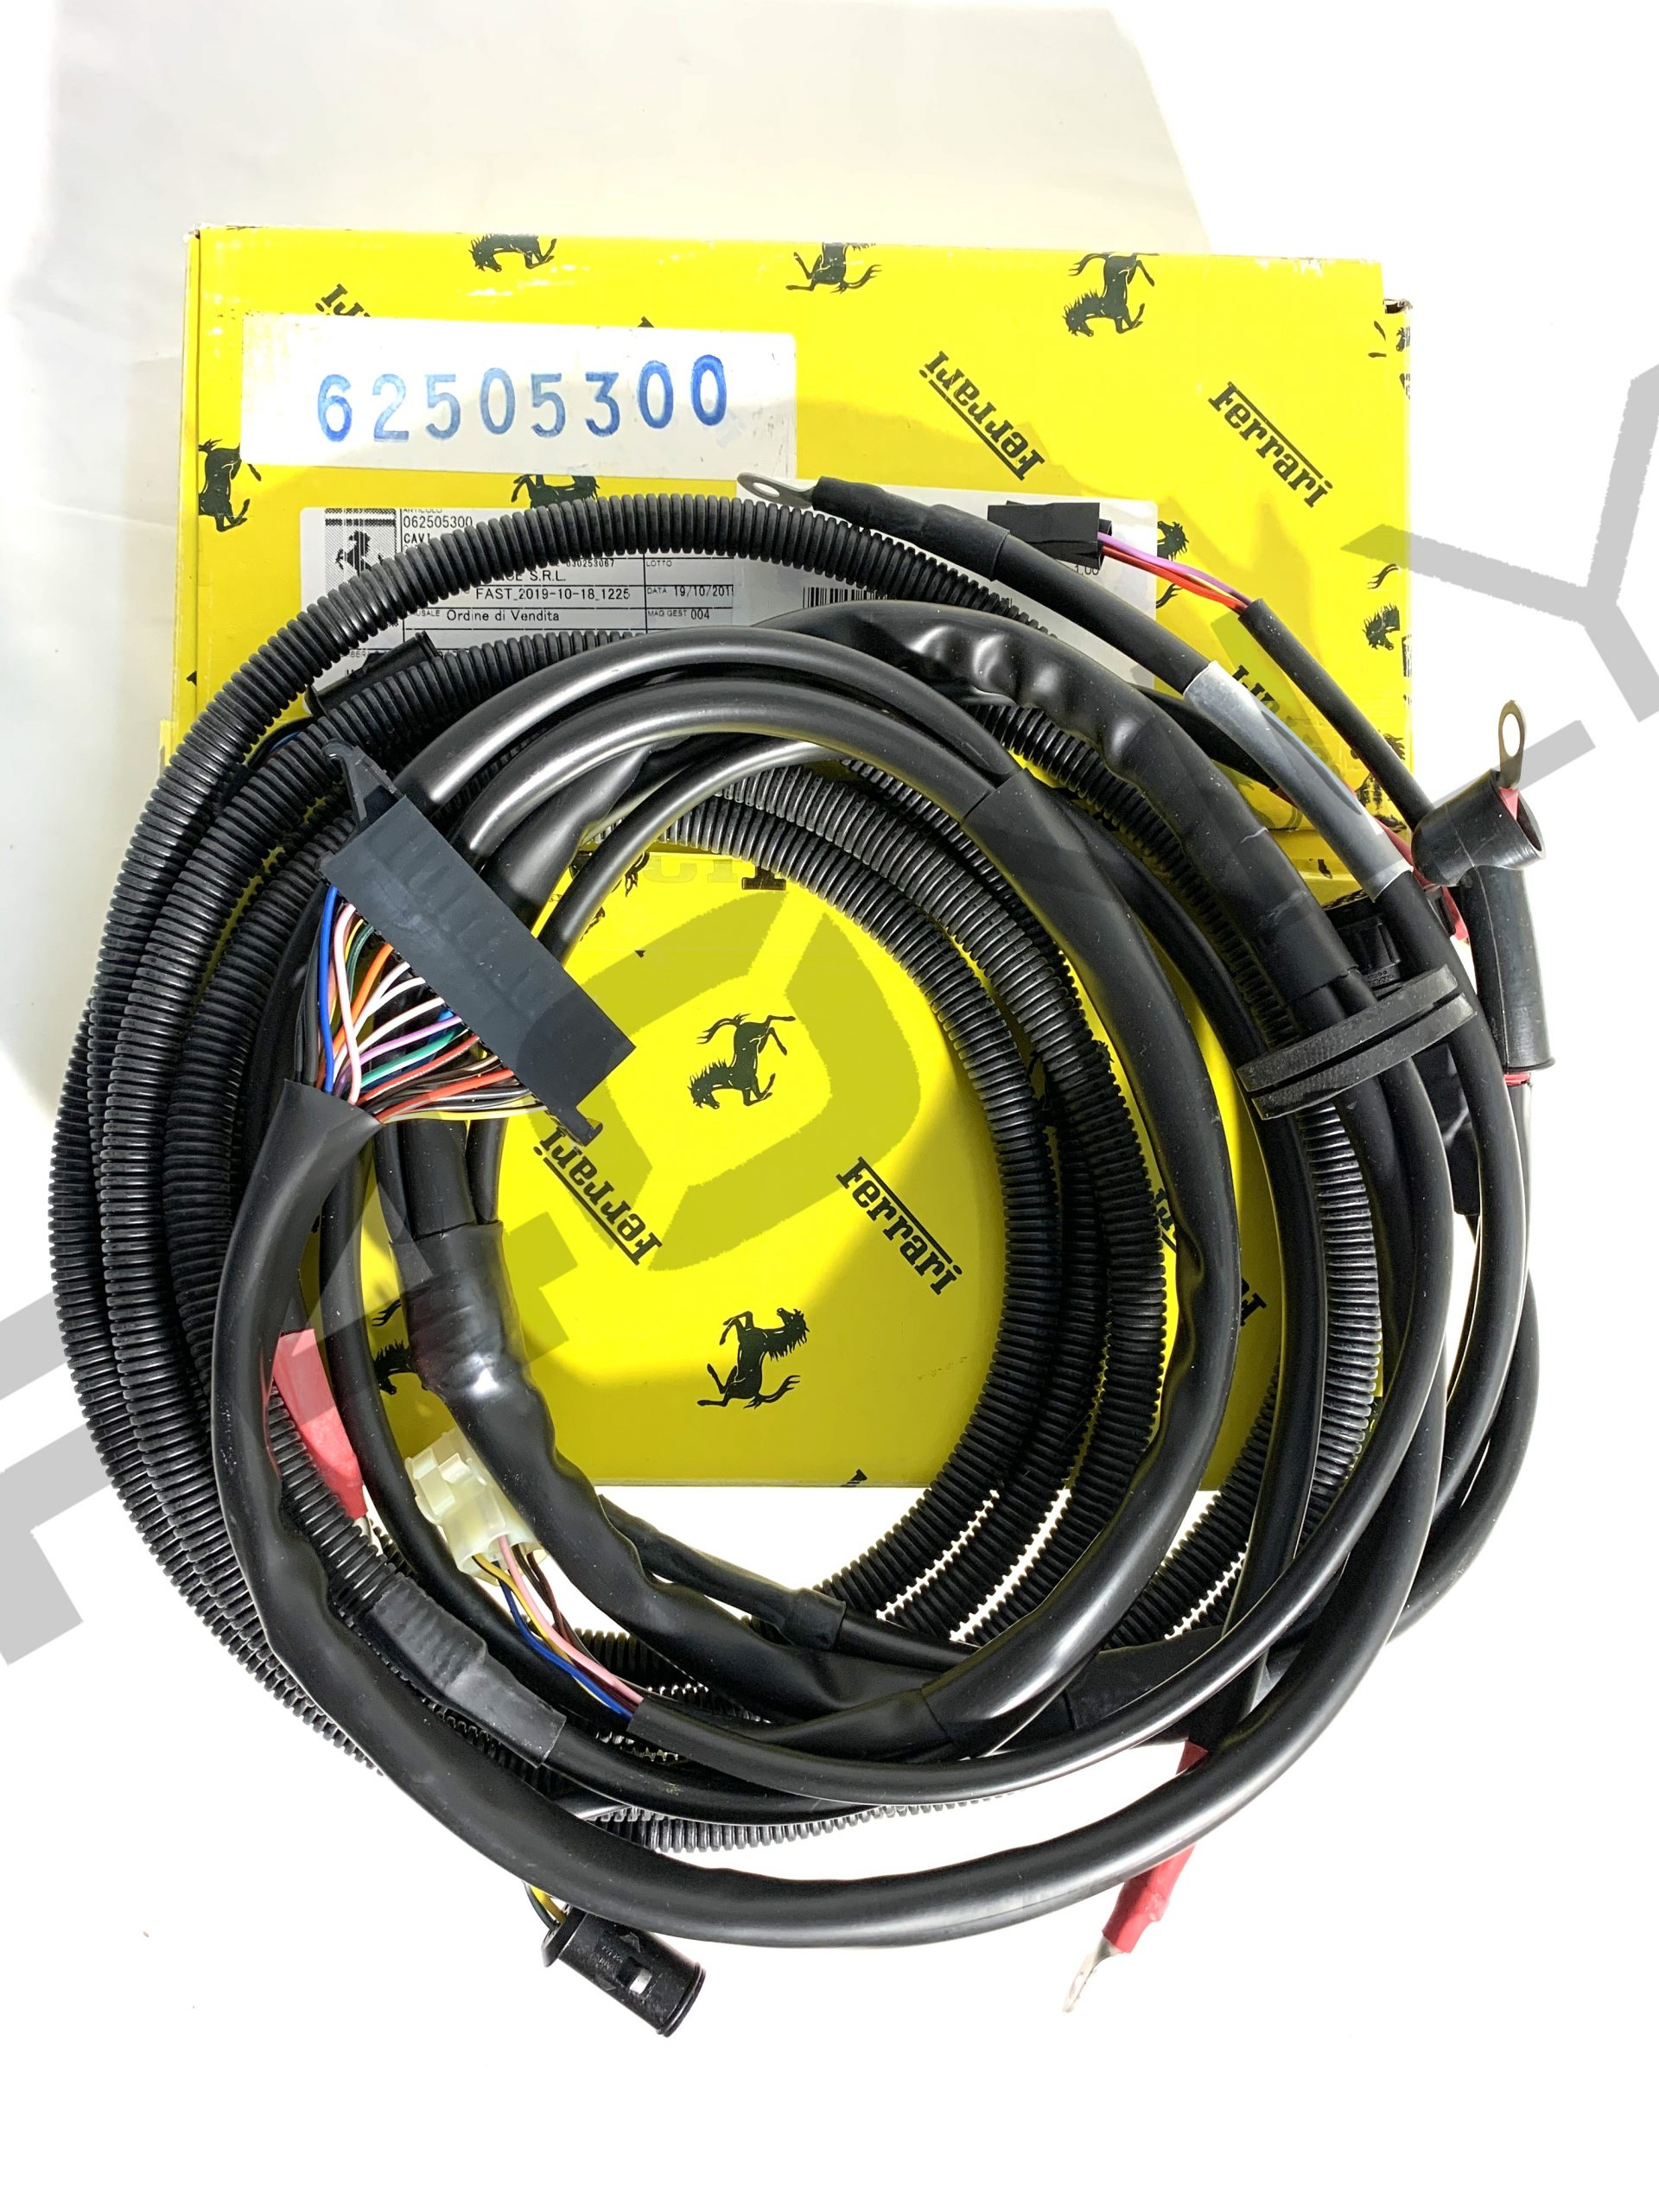 Complete Cable for Lifting System Image